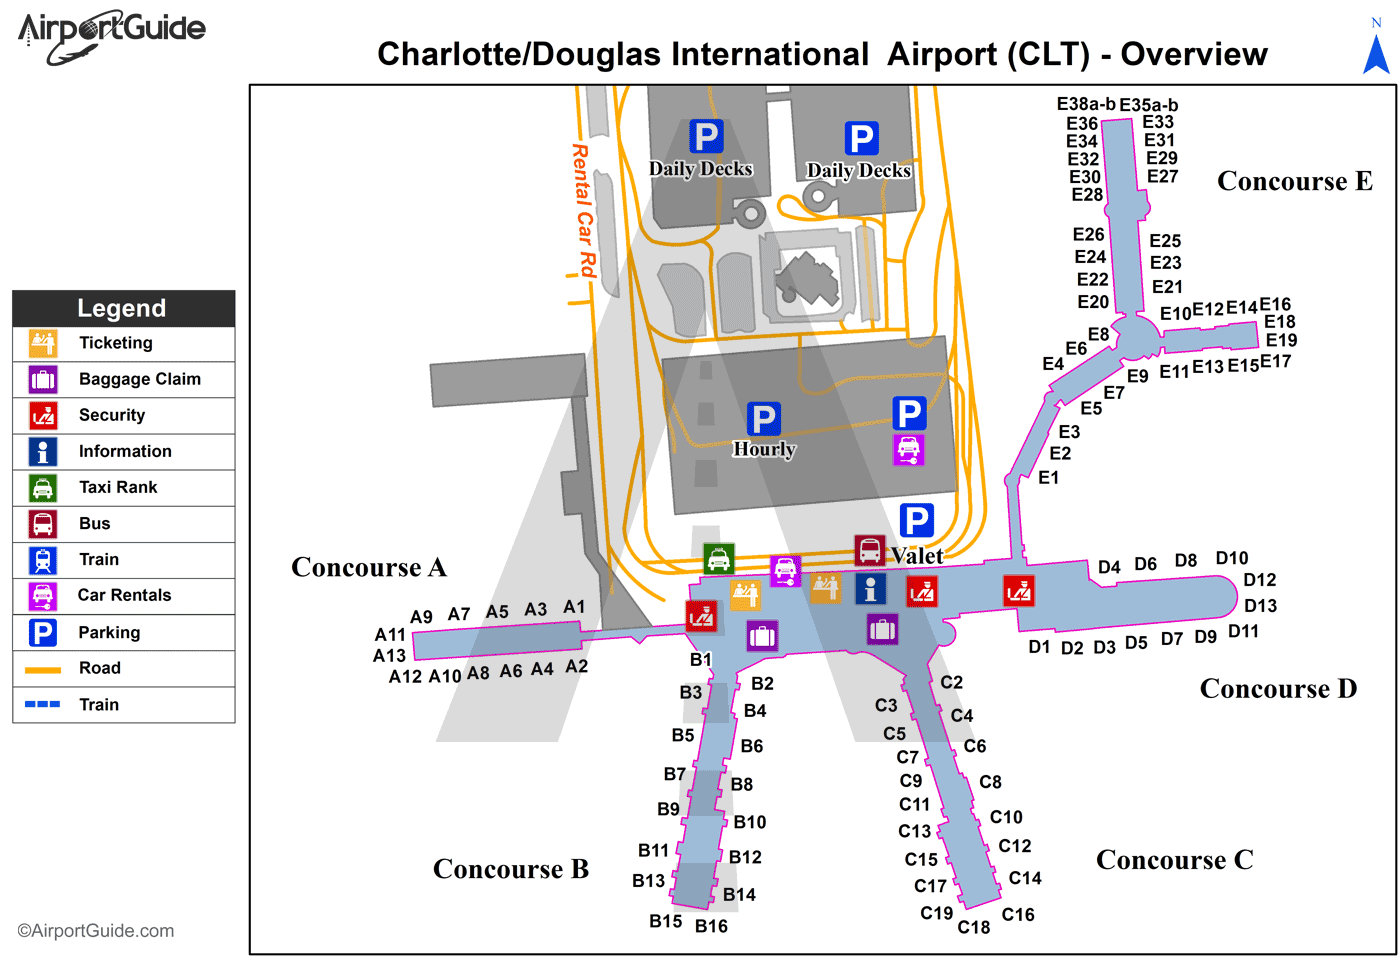 douglas international airport map Charlotte Douglas International Airport Kclt Clt Airport Guide douglas international airport map